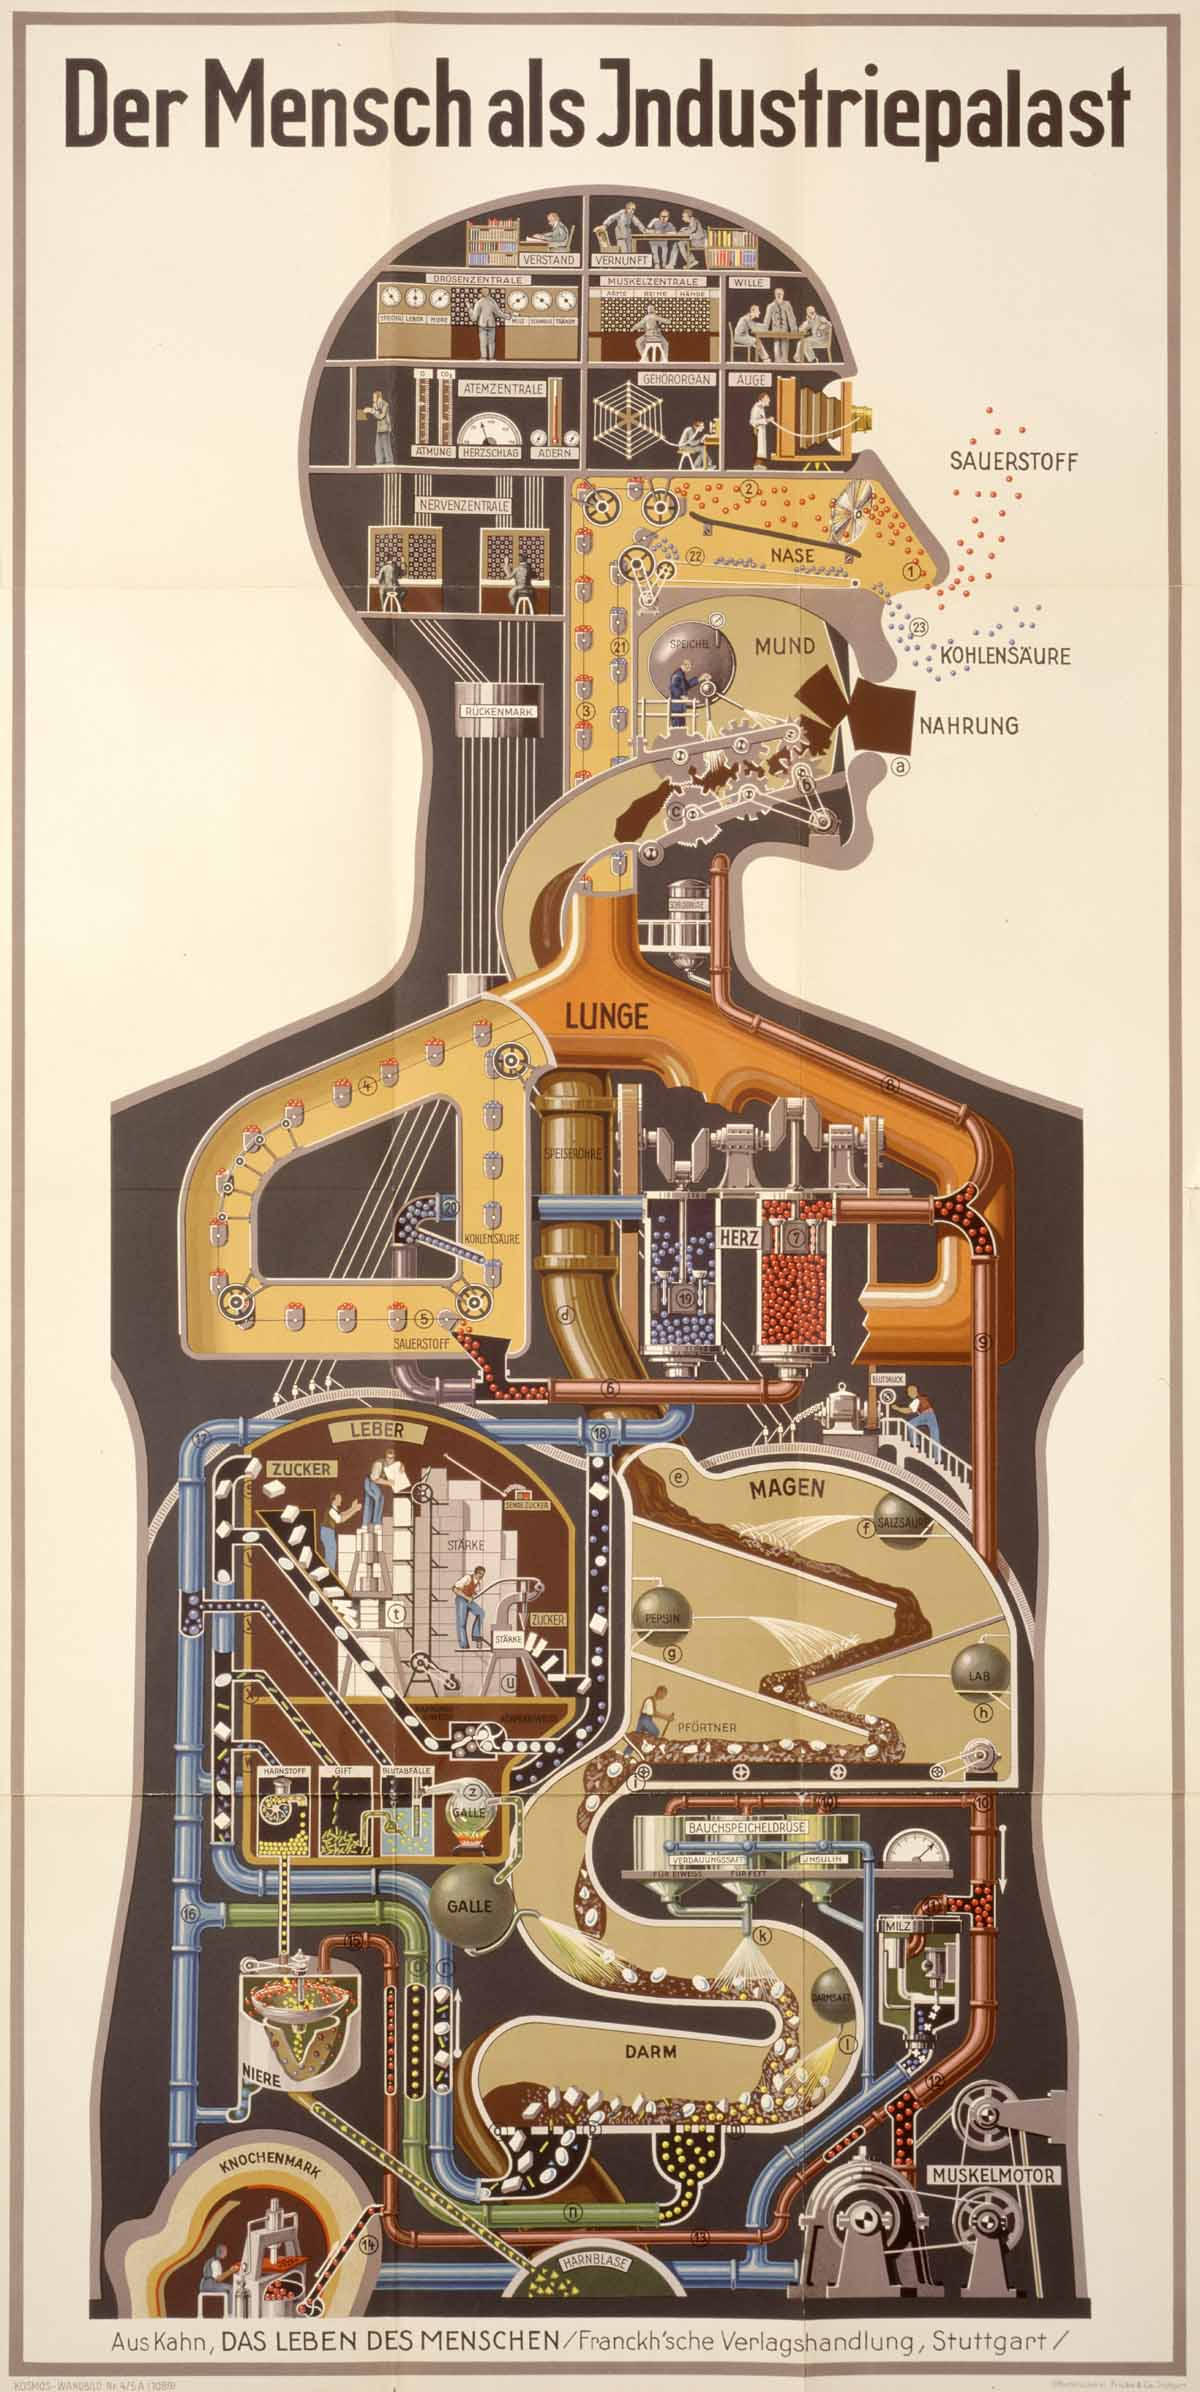 dream anatomy gallery fritz kahn man as industrial palace. Black Bedroom Furniture Sets. Home Design Ideas